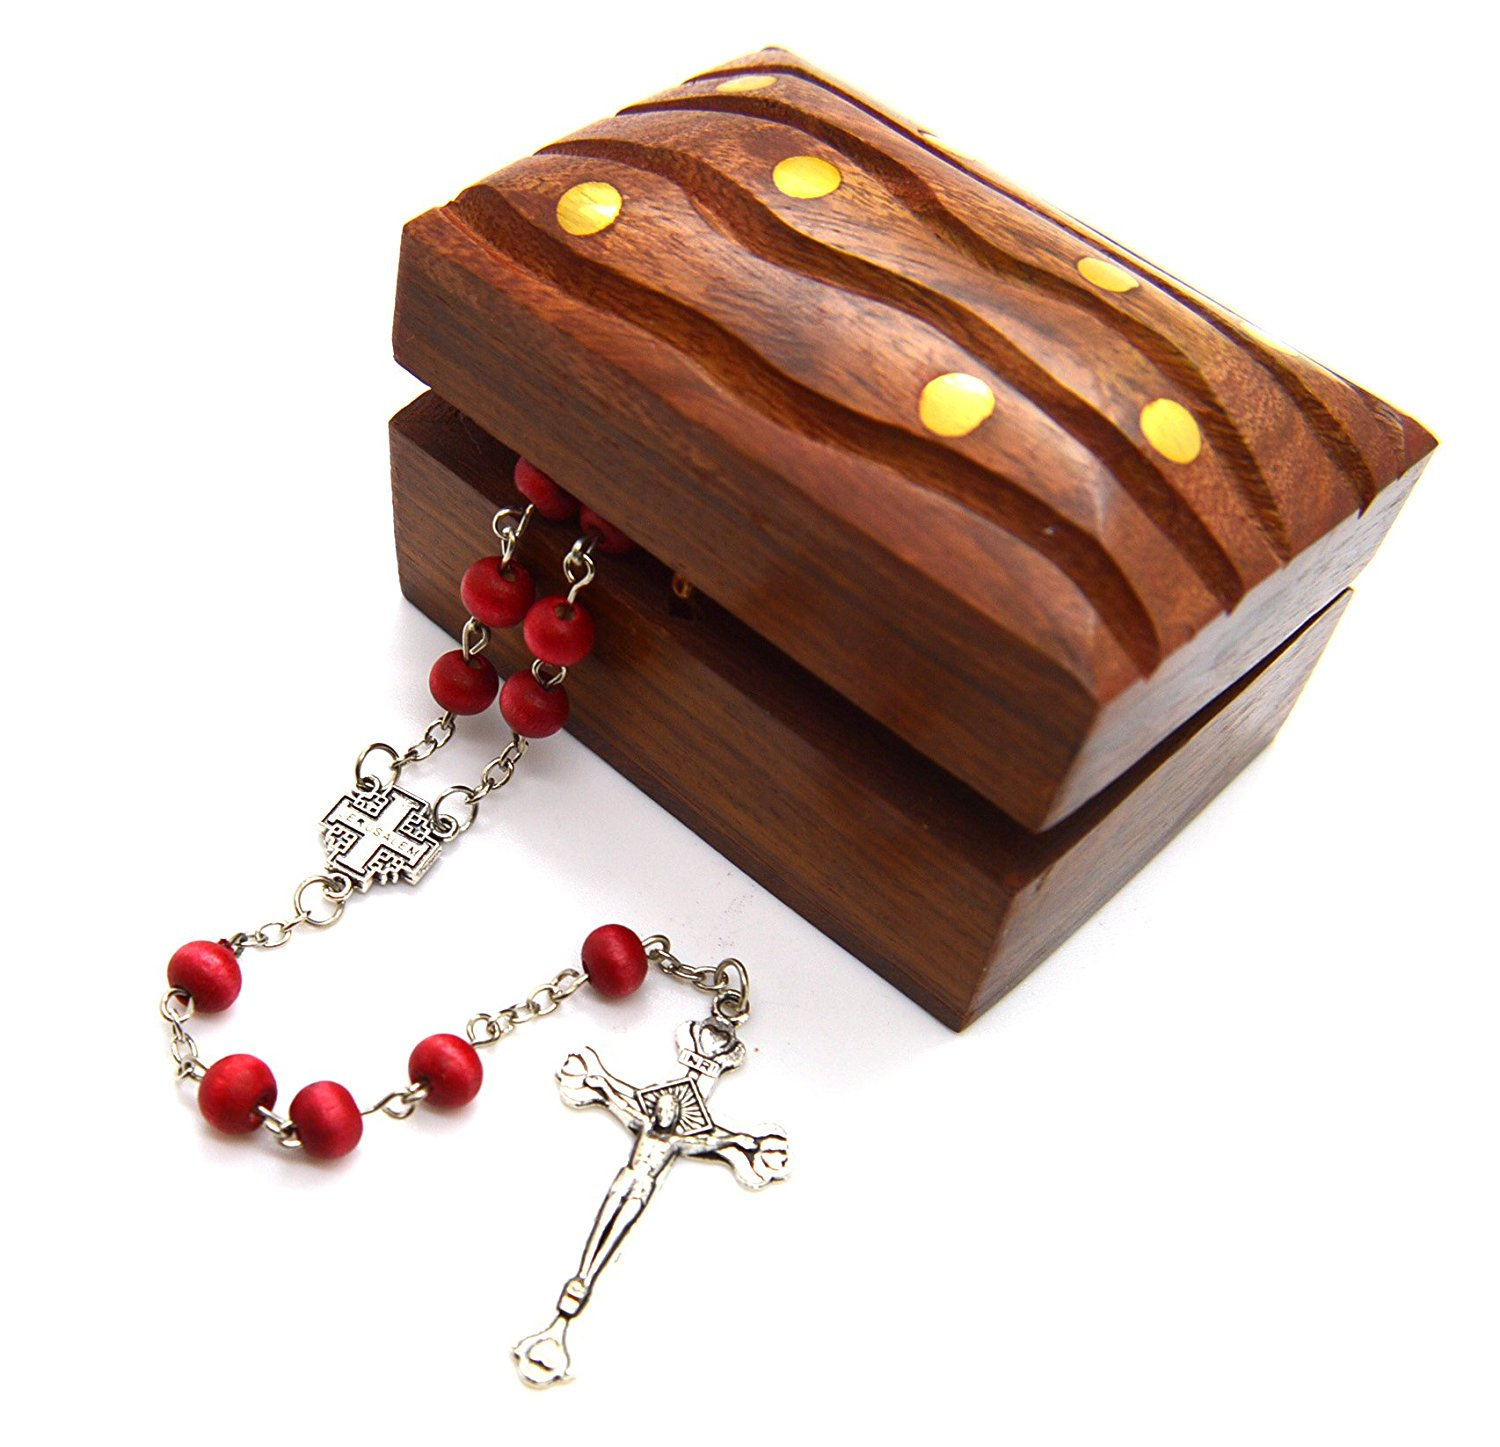 Jerusalem Cross Rose Petal Scented Wood Carved Rosary 6 Mm Bead and Wooden Hand Carved Rosary Box